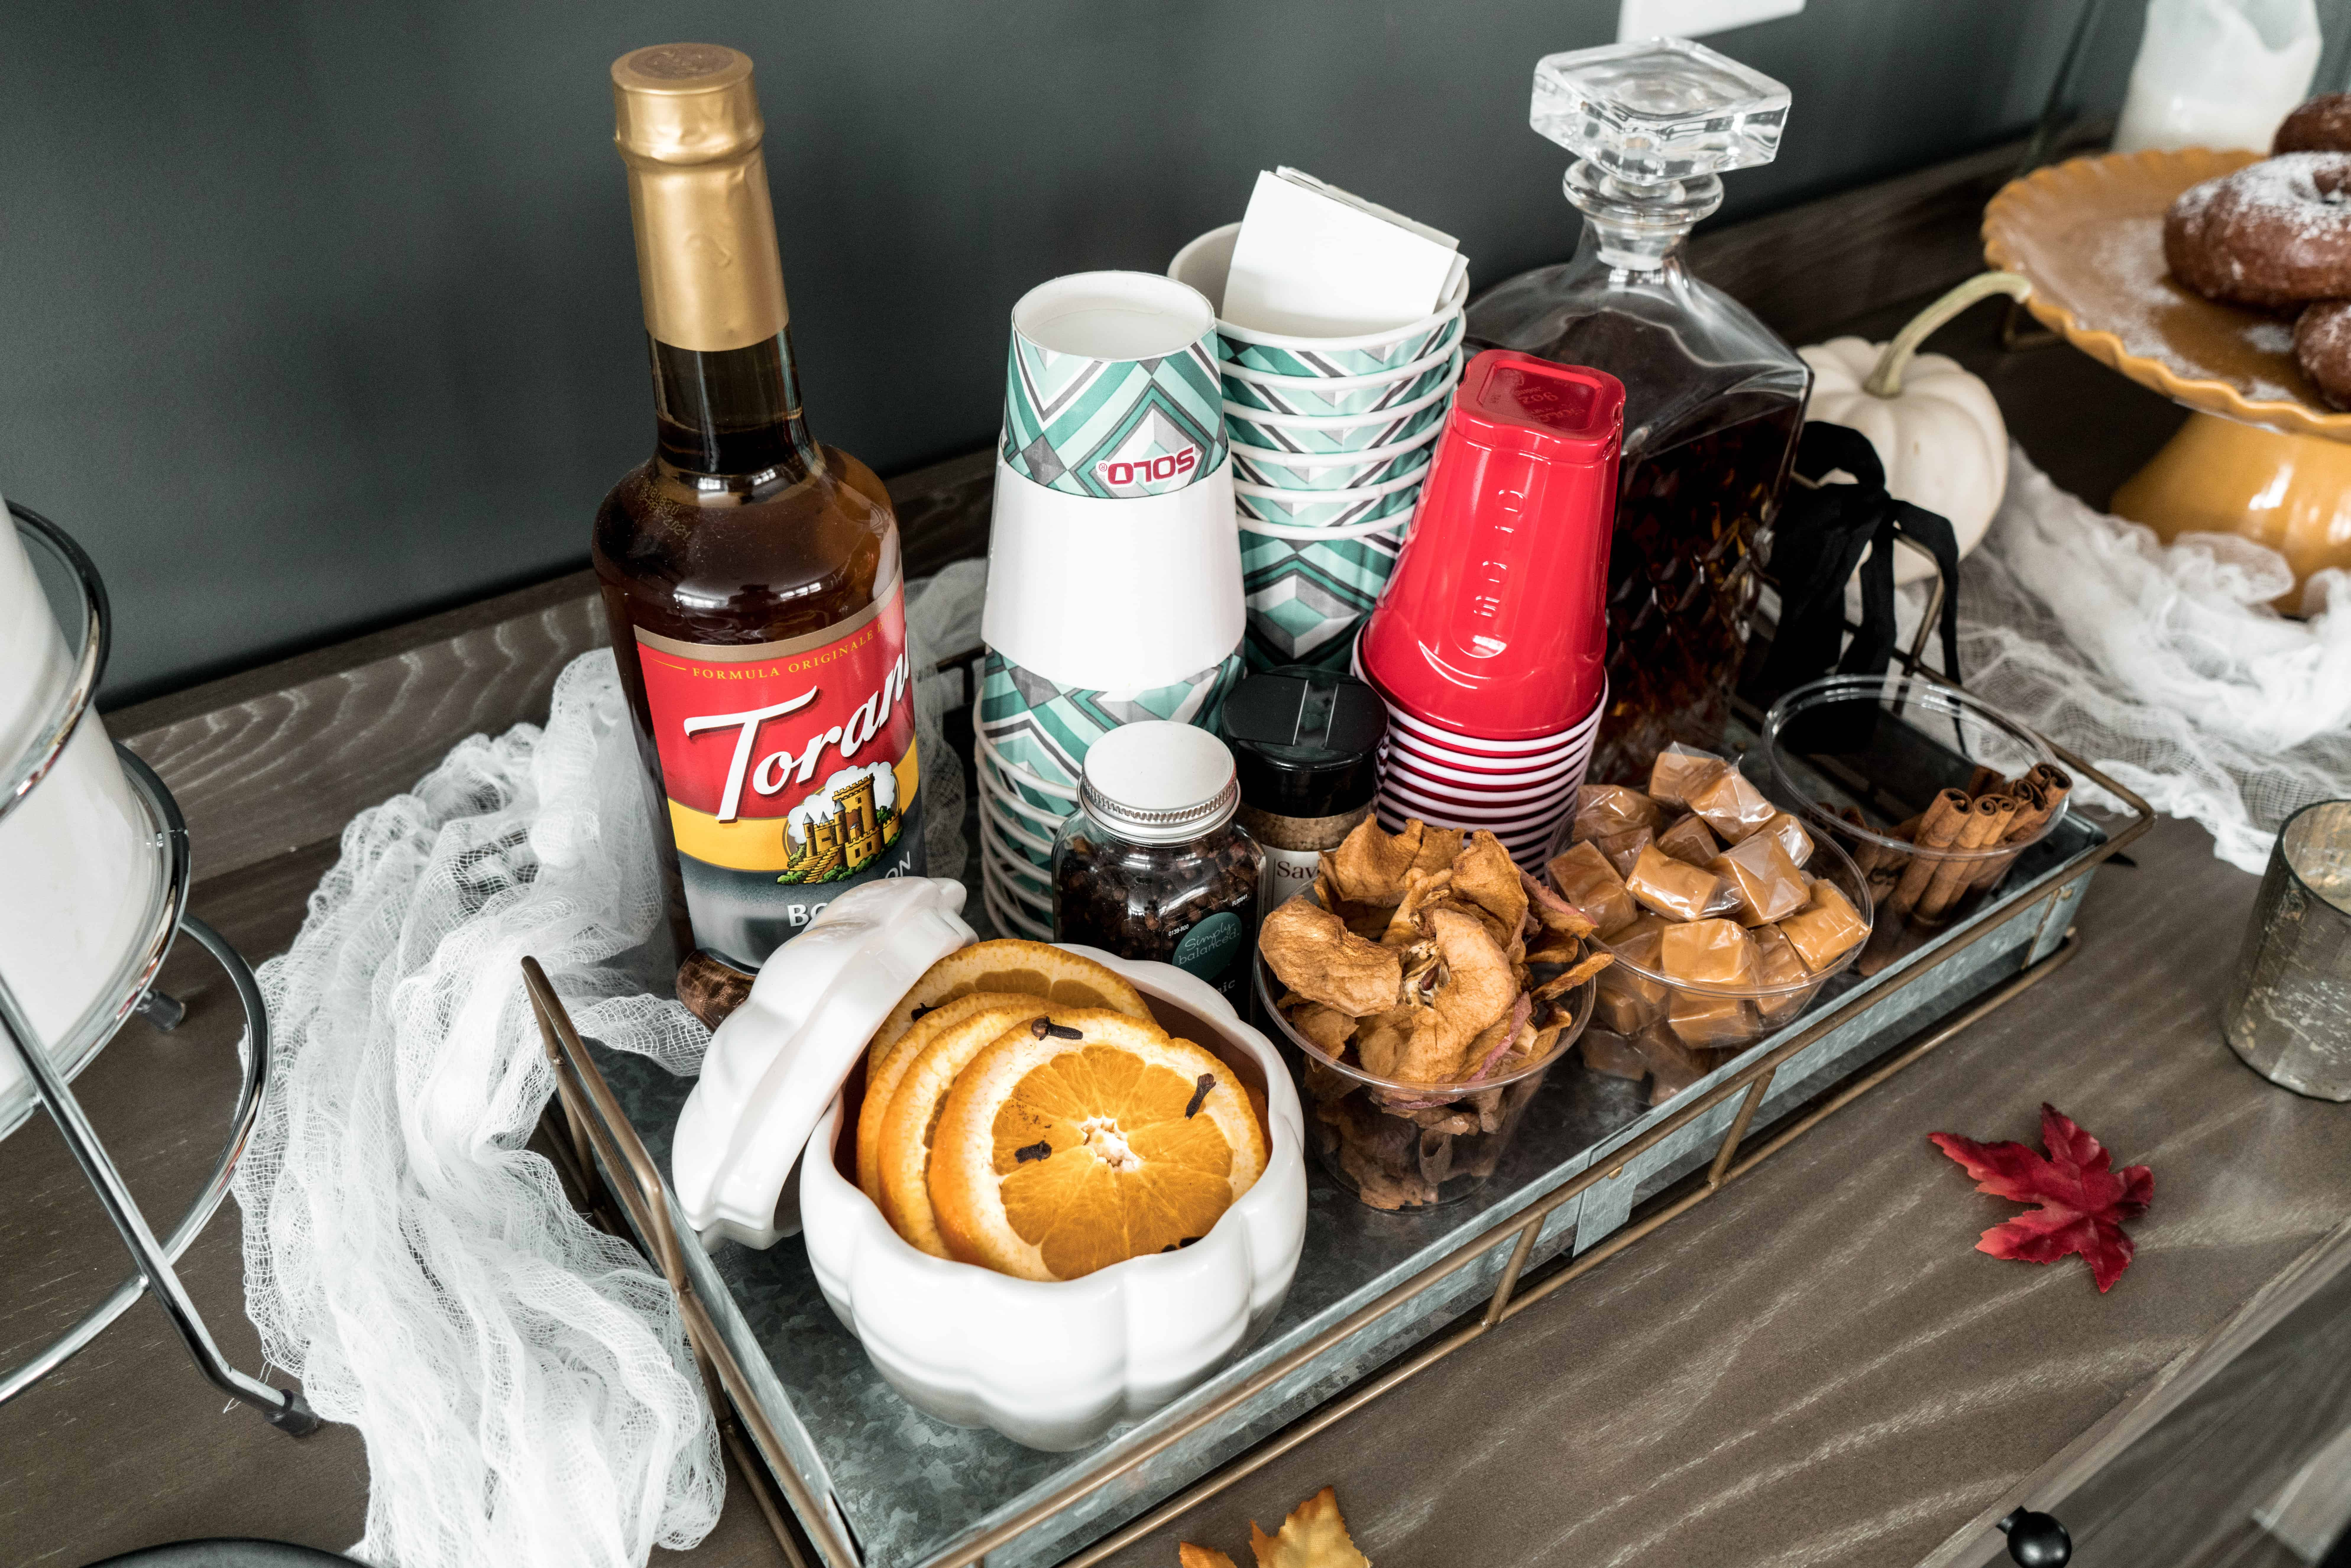 Hot apple cider bar toppings and cups in tray